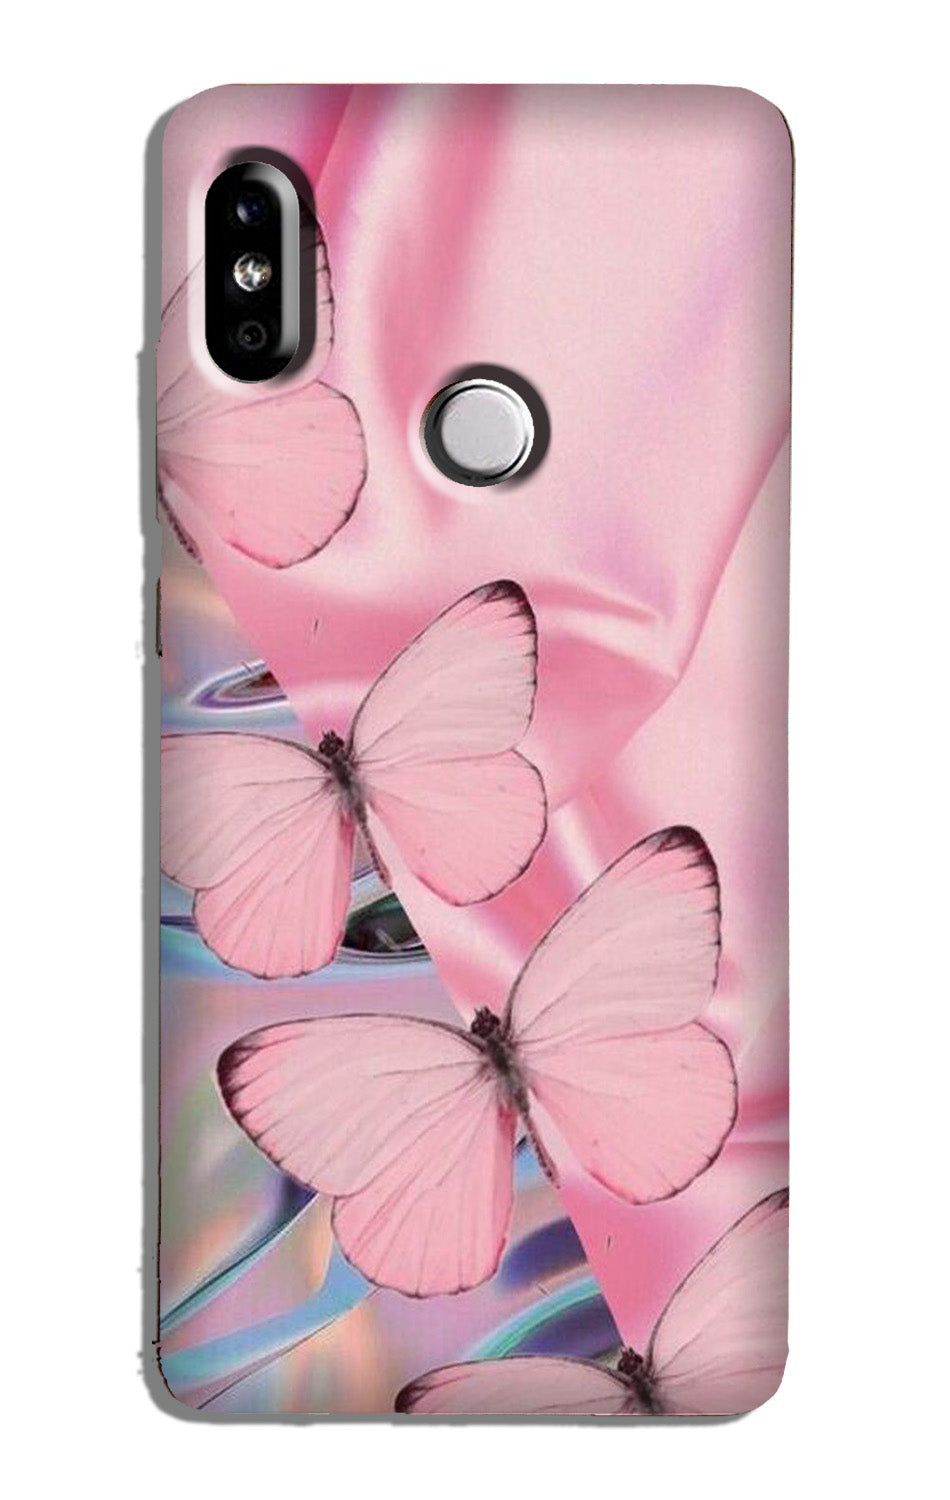 Butterflies Case for Redmi Y2